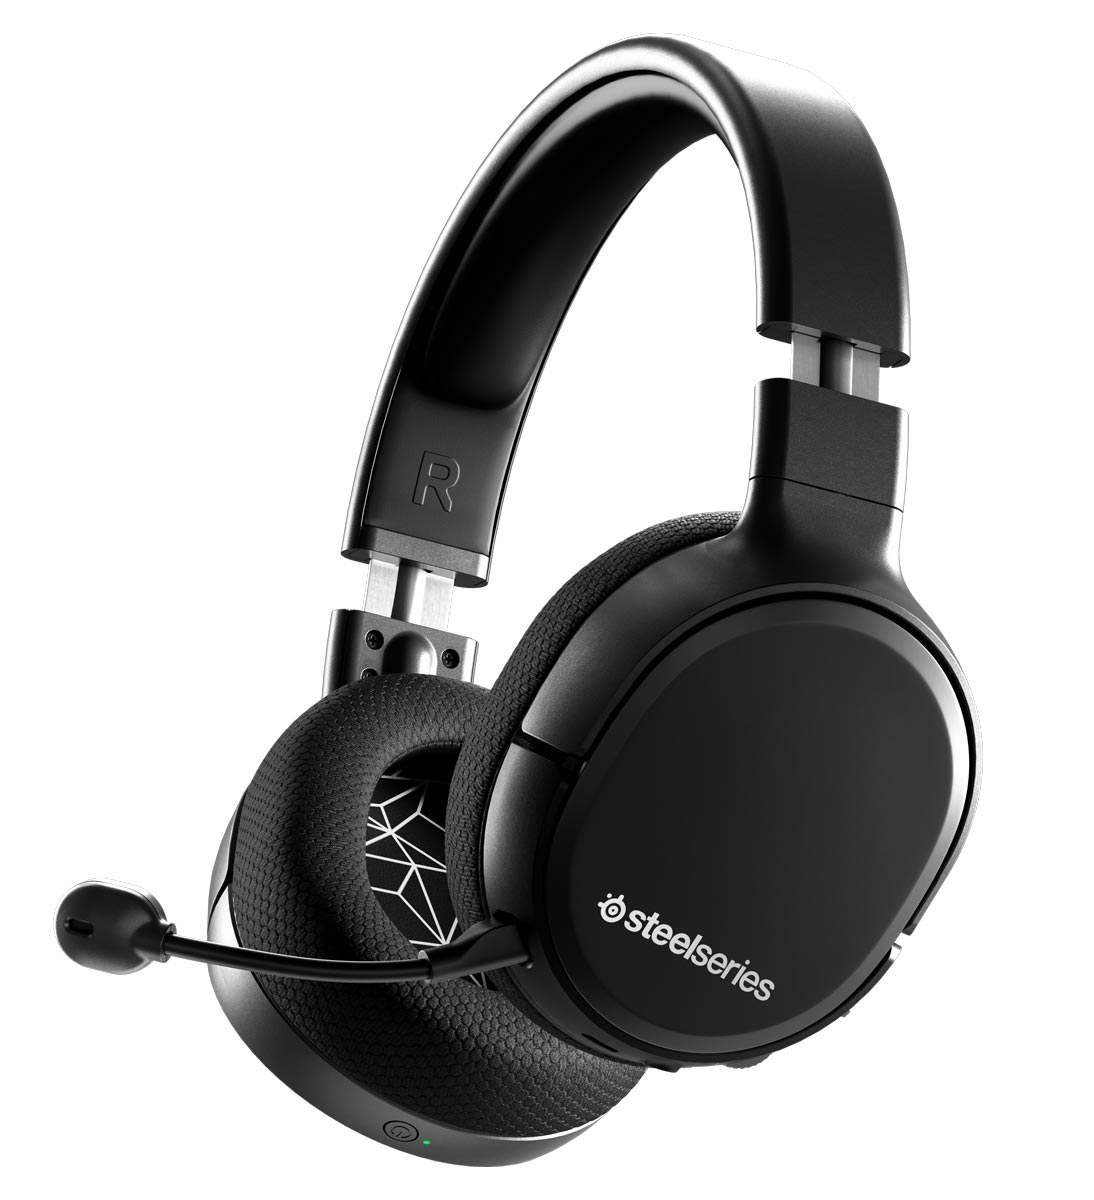 The SteelSeries Arctis 1 Wireless gaming headset